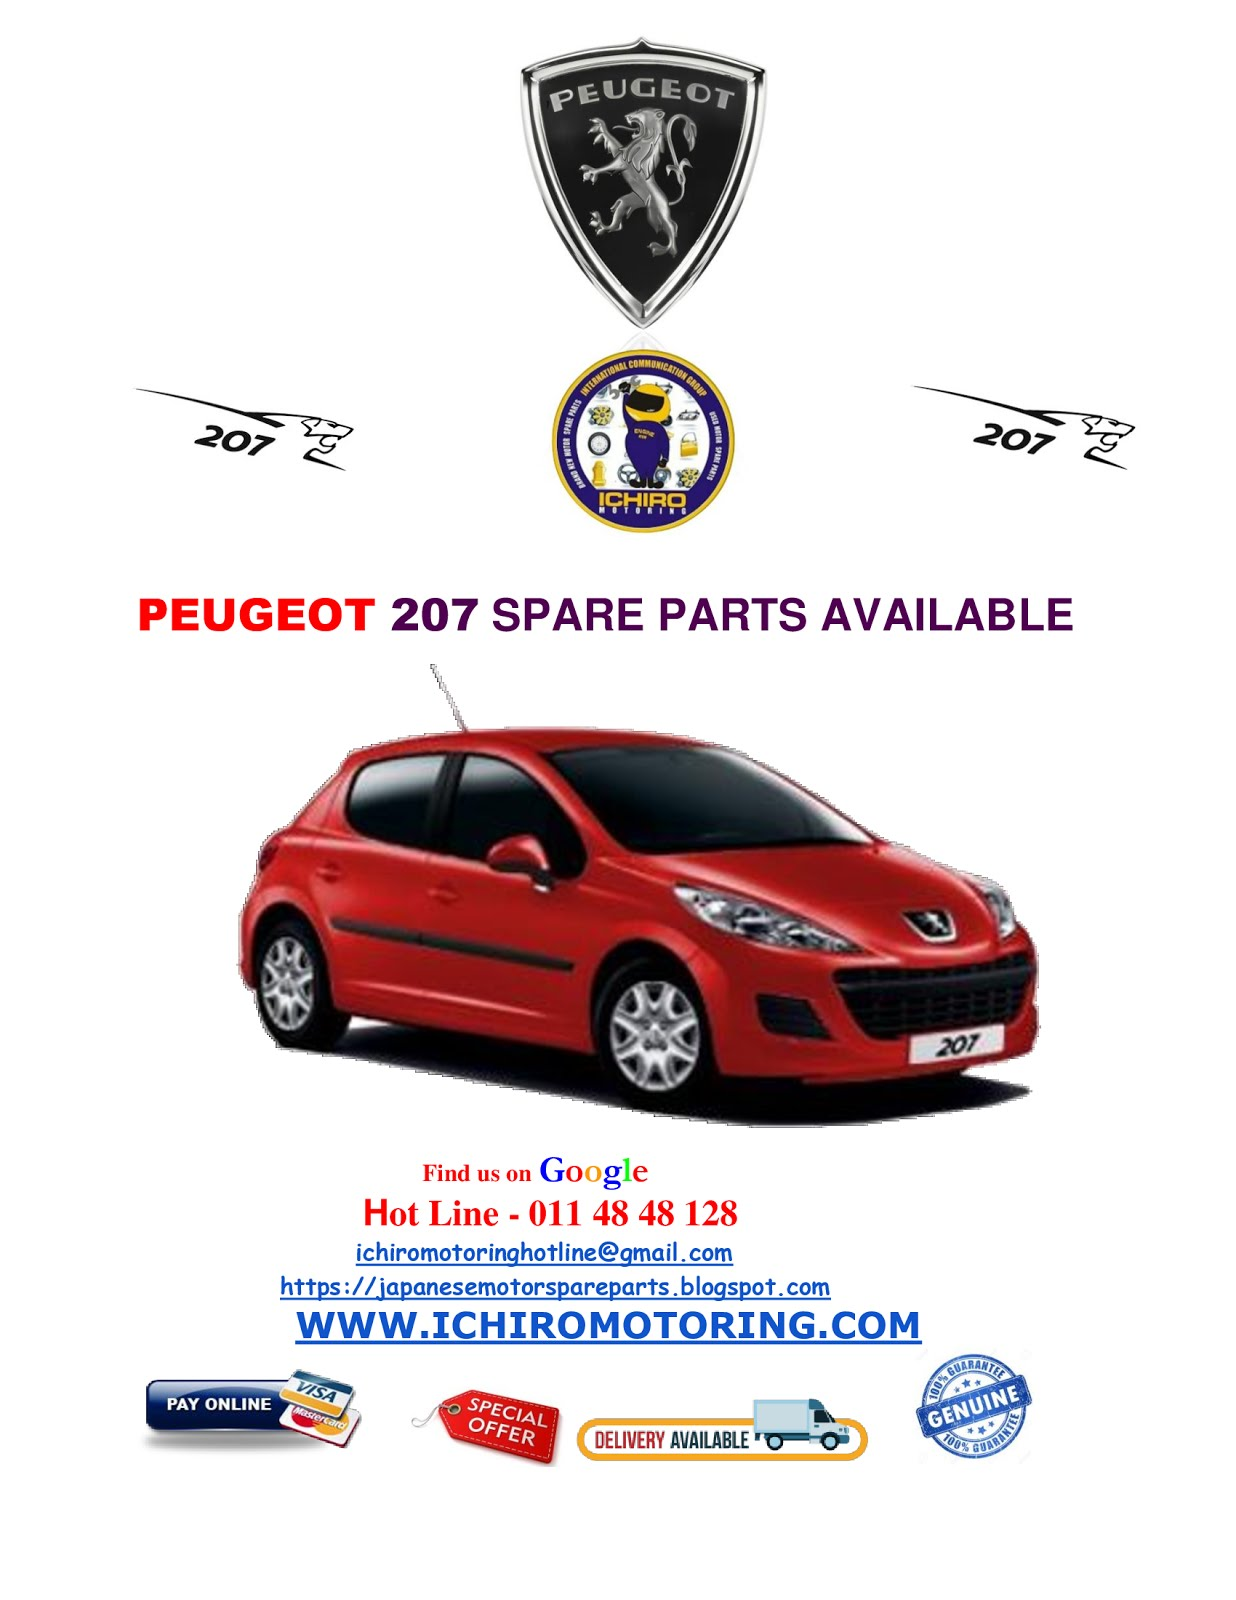 Japanese Motor Spare Parts Europe Car Spare Parts In Sri Lanka